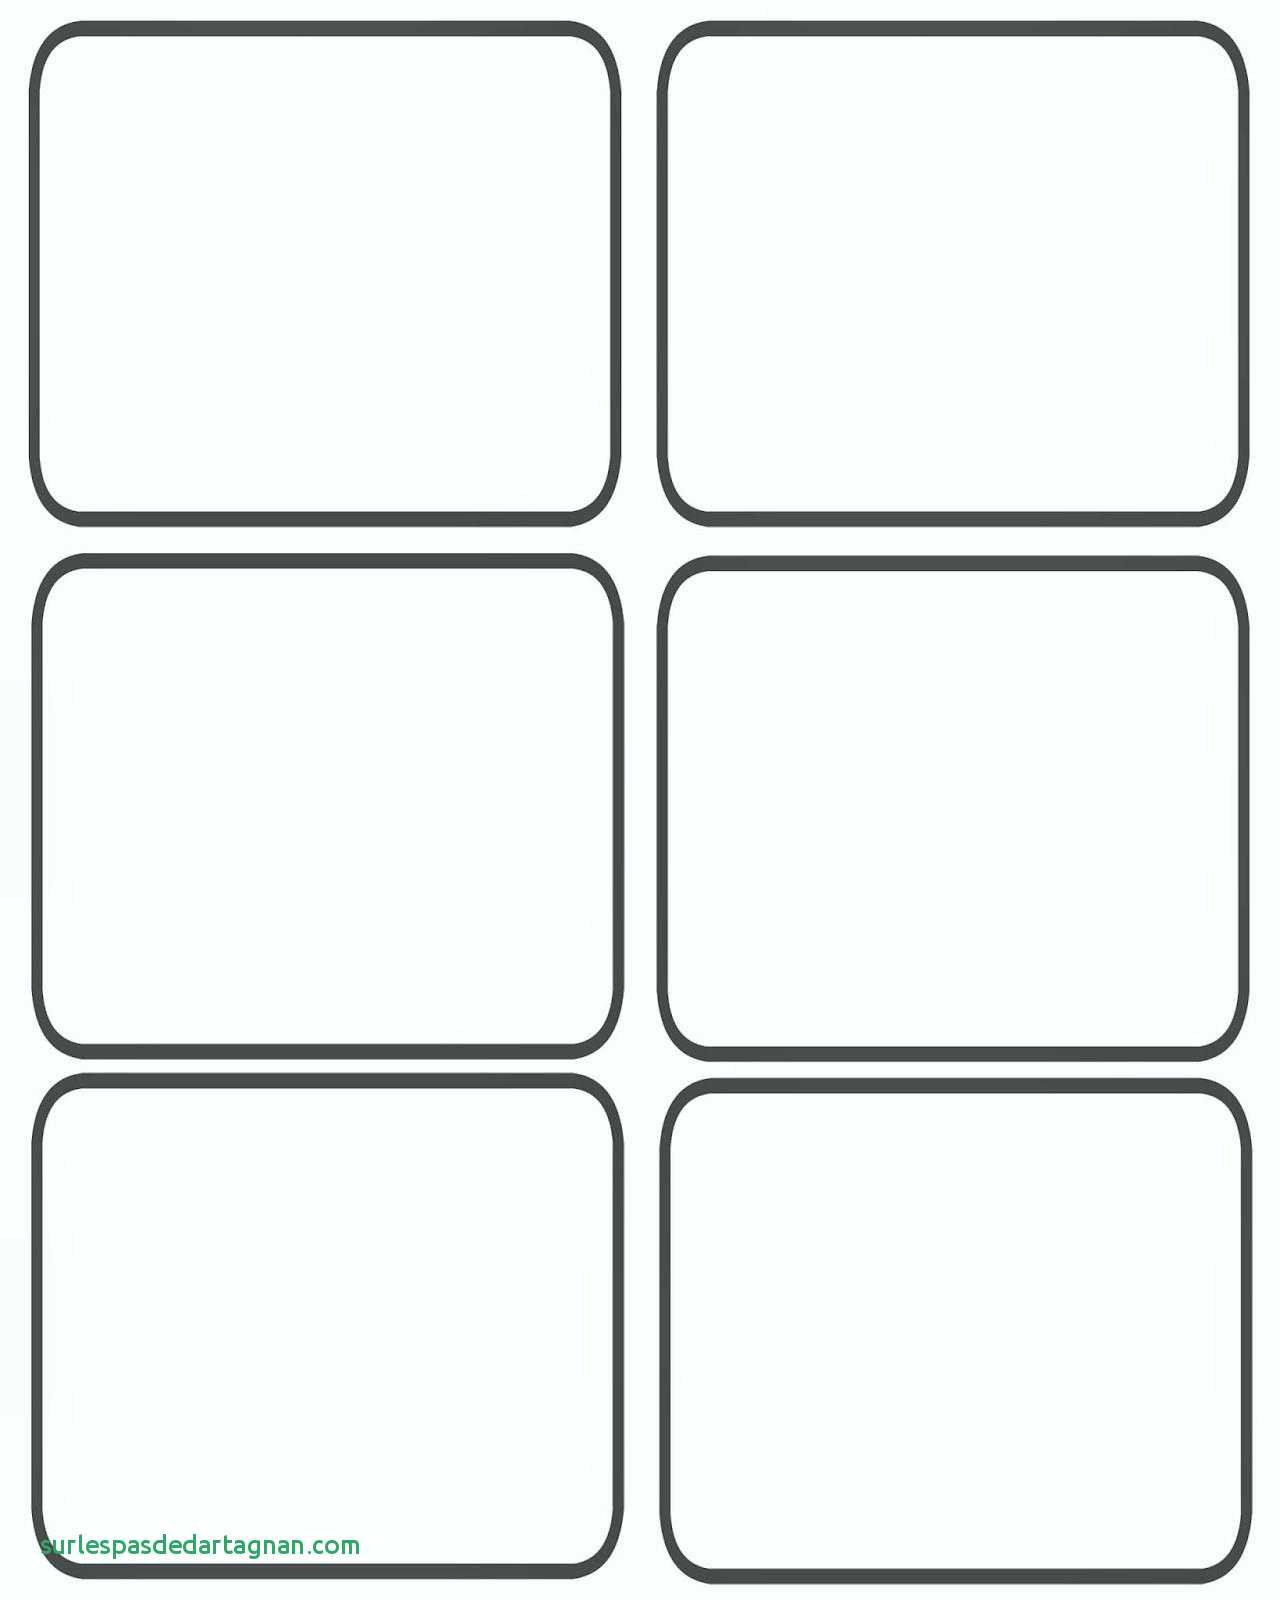 17 free printable playing cards